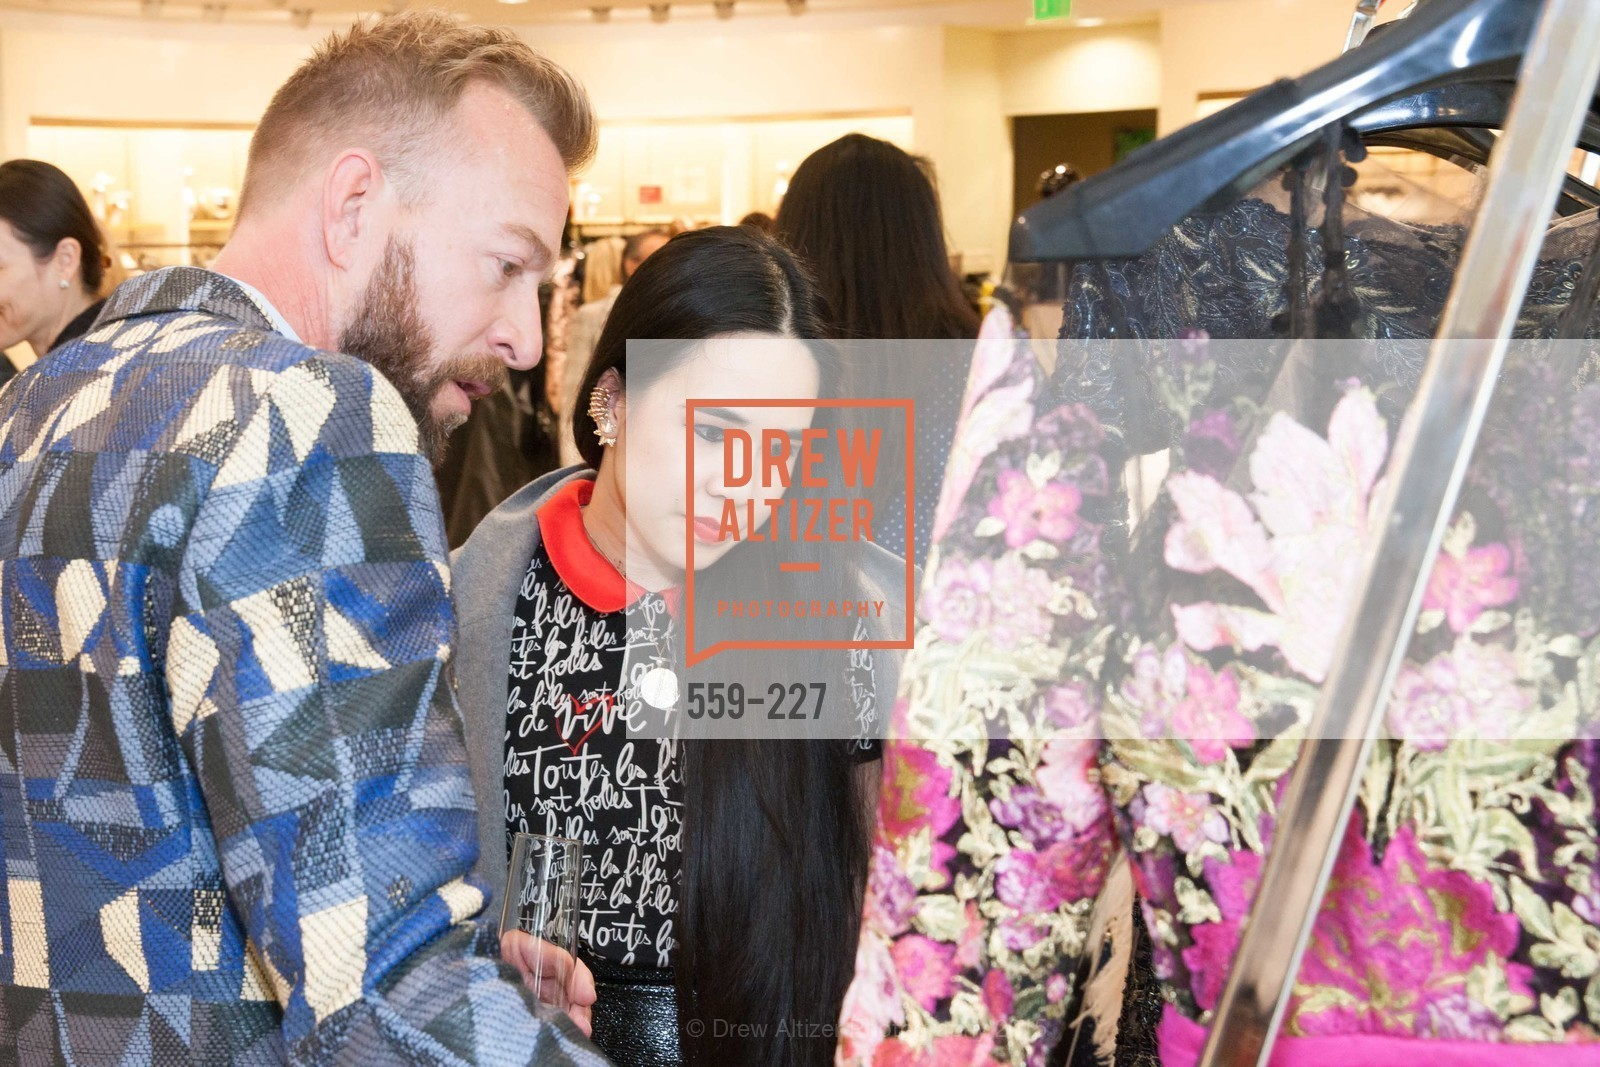 Michael Purdy, Khuyen Do, Keren Craig Personal Appearance for Marchesa Fall Trunk Show, Neiman Marcus, May 7th, 2015,Drew Altizer, Drew Altizer Photography, full-service agency, private events, San Francisco photographer, photographer california